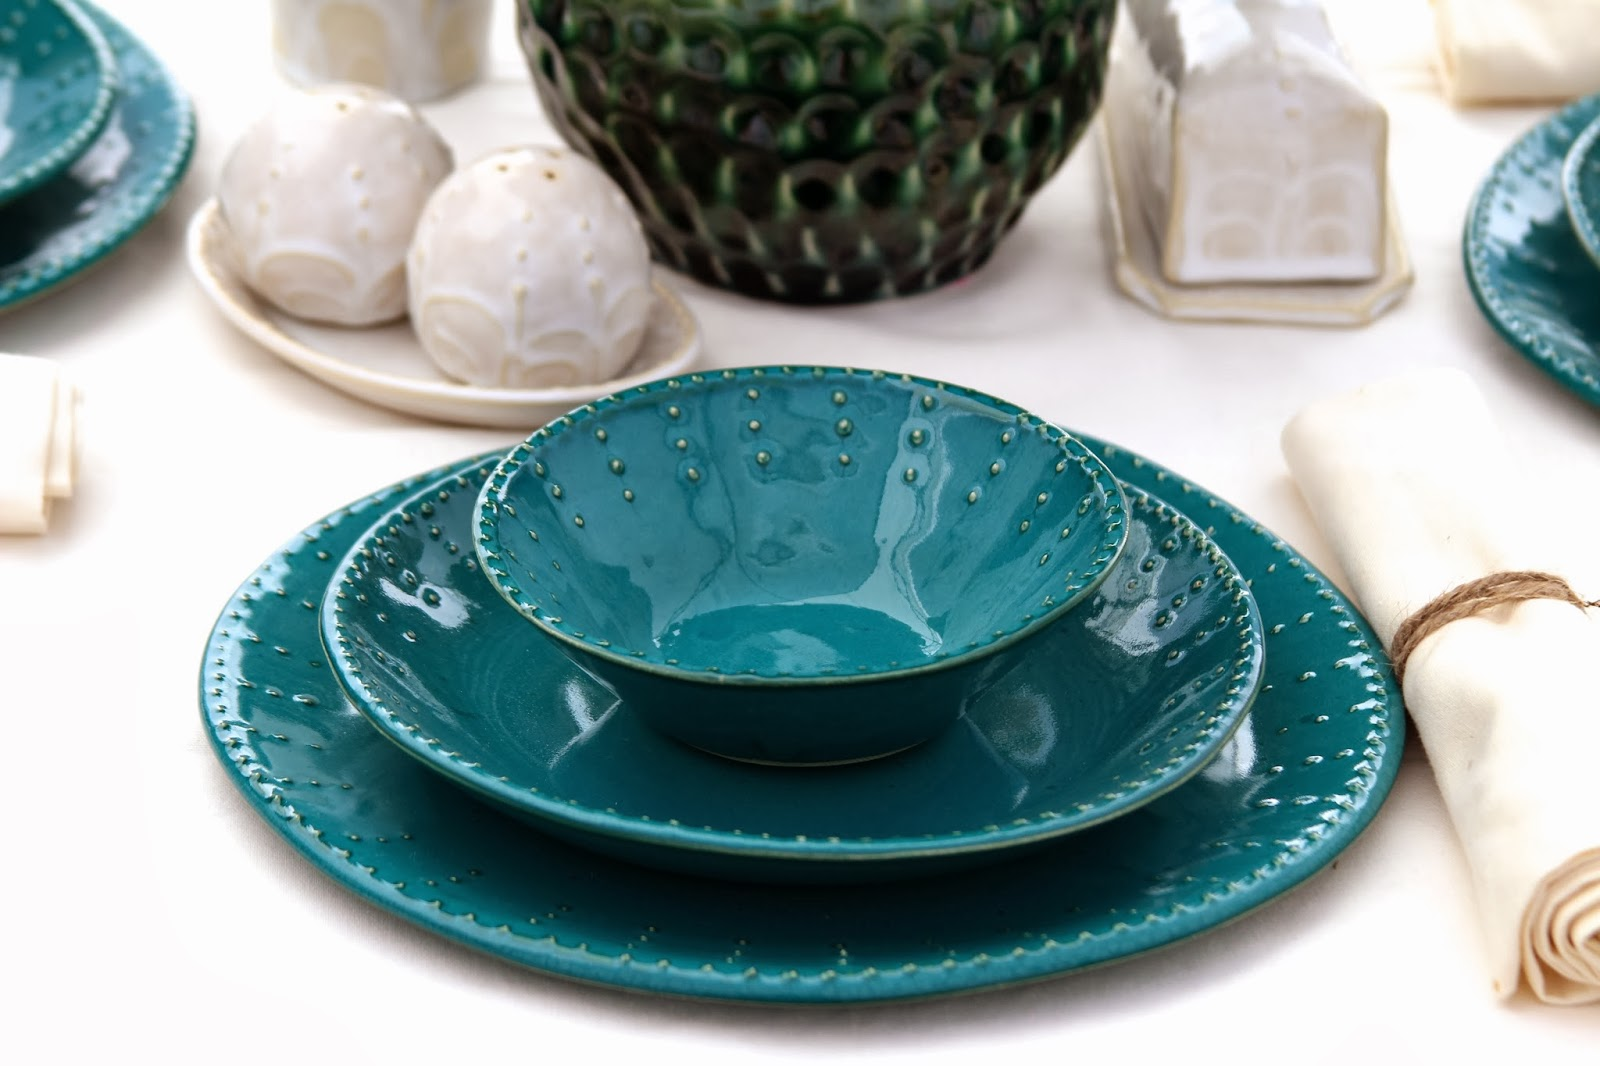 Bowl Deep Salad Plate Dinner Plate in Dark Teal & Back Bay Pottery: French Country Handmade Dinnerware by Back Bay Pottery